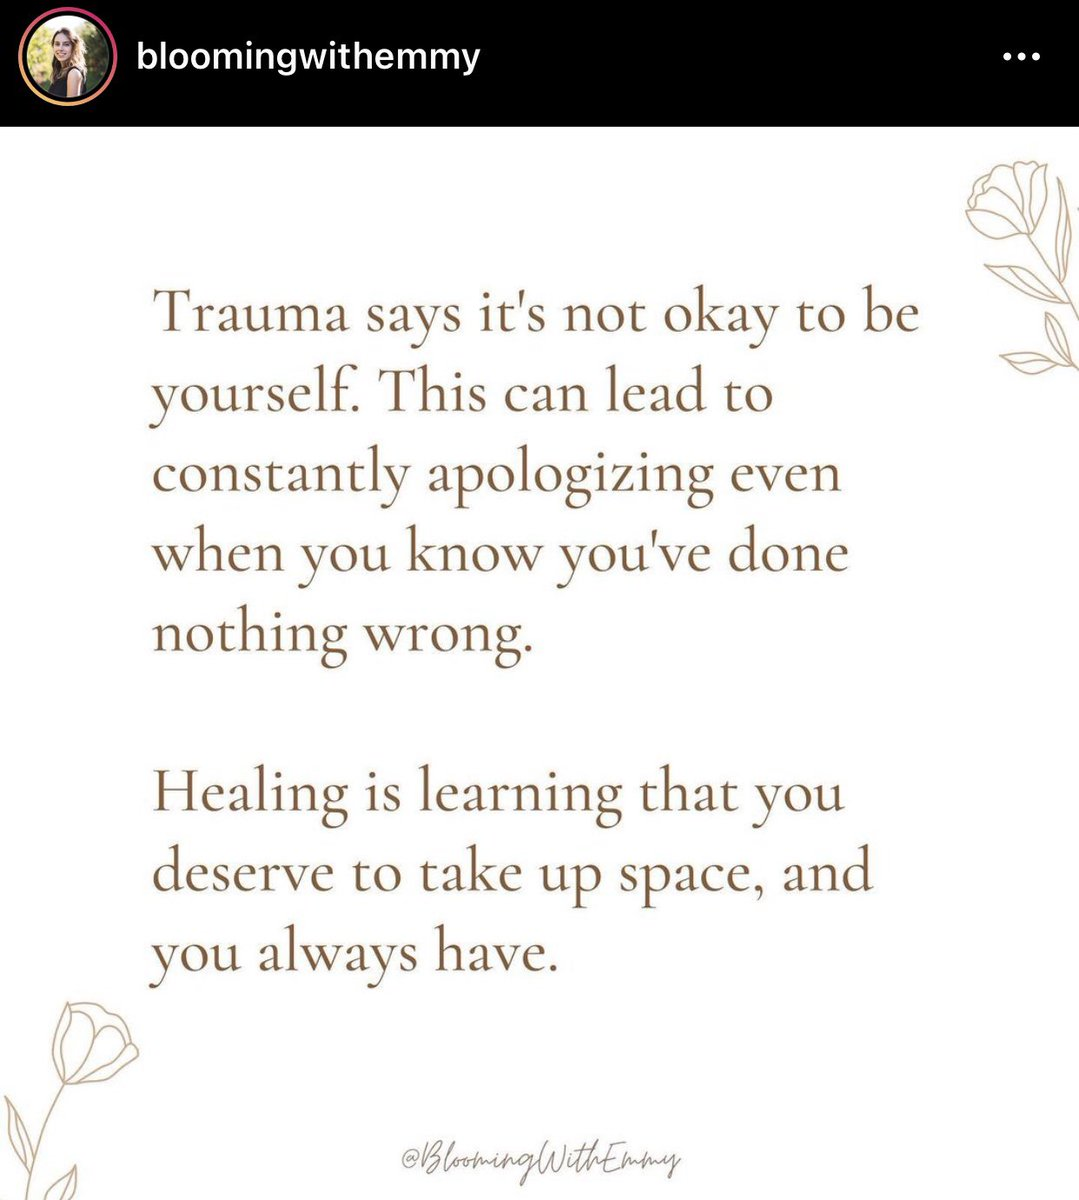 You deserve space...shine brightly and you don't have to dim your light for others. #trauma #mentalhealth #depression #space https://t.co/AJGqIMQvxY